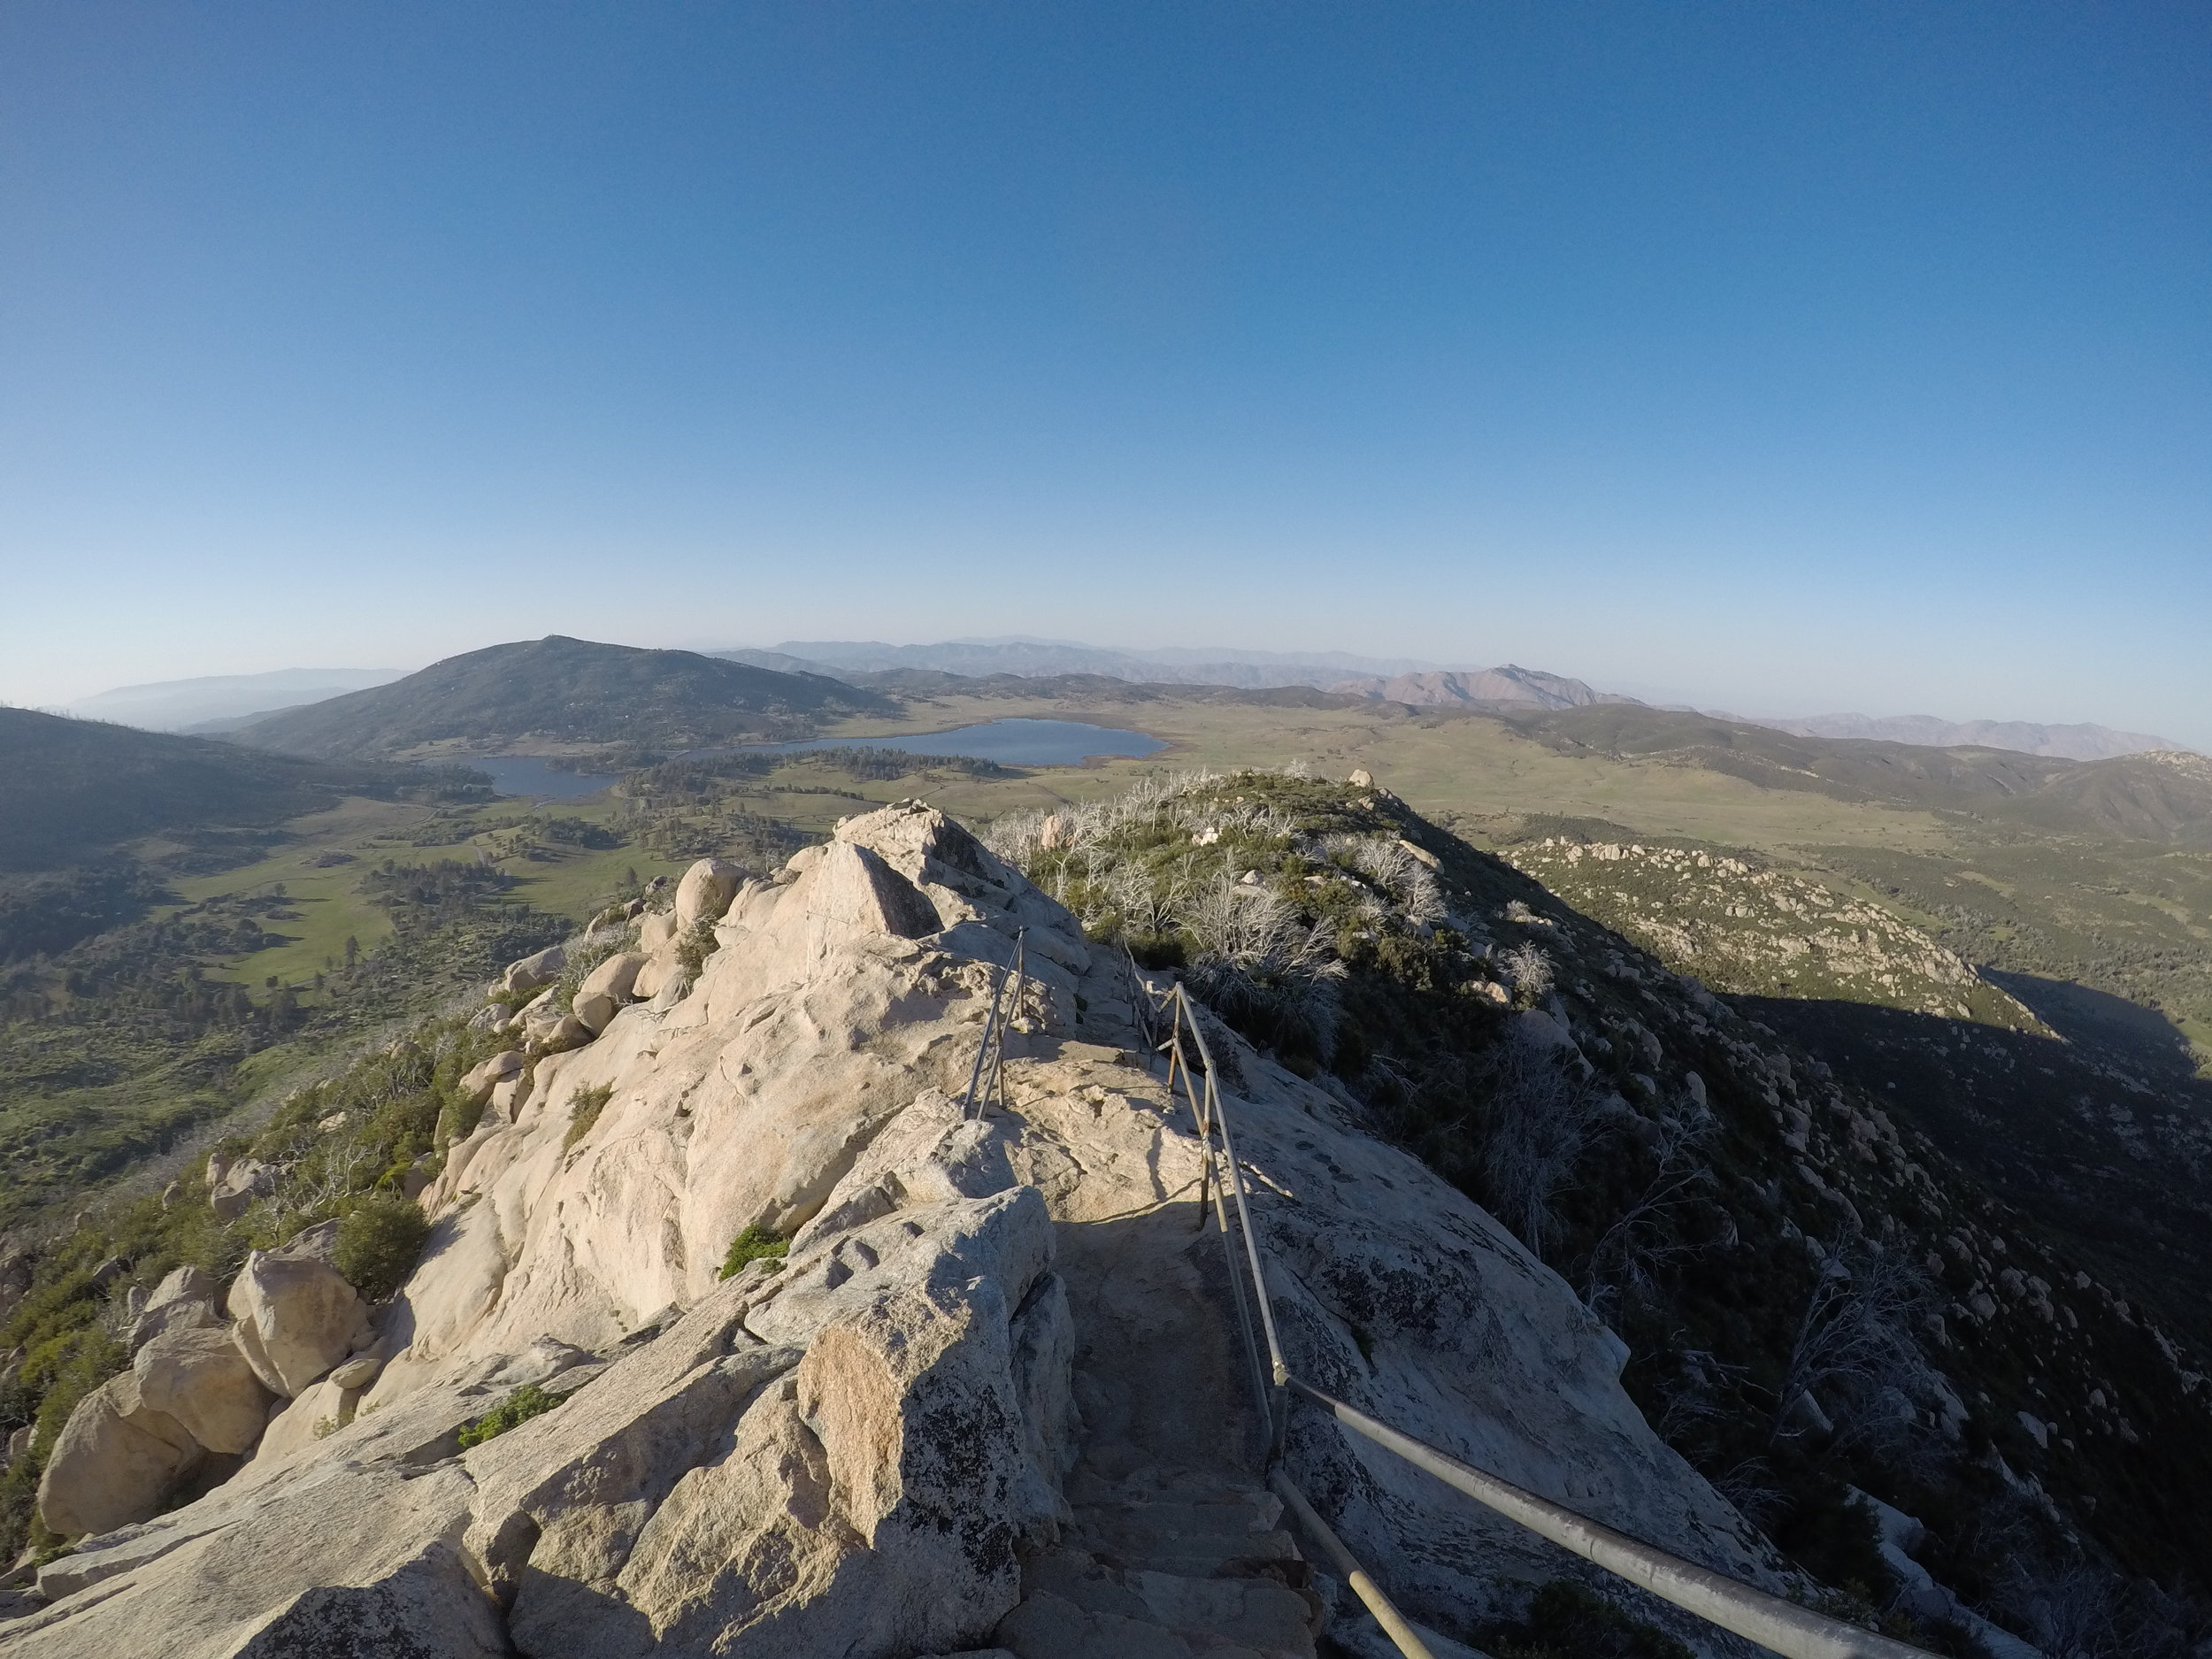 The descent off Stonewall Peak has great views and is a fun experience.